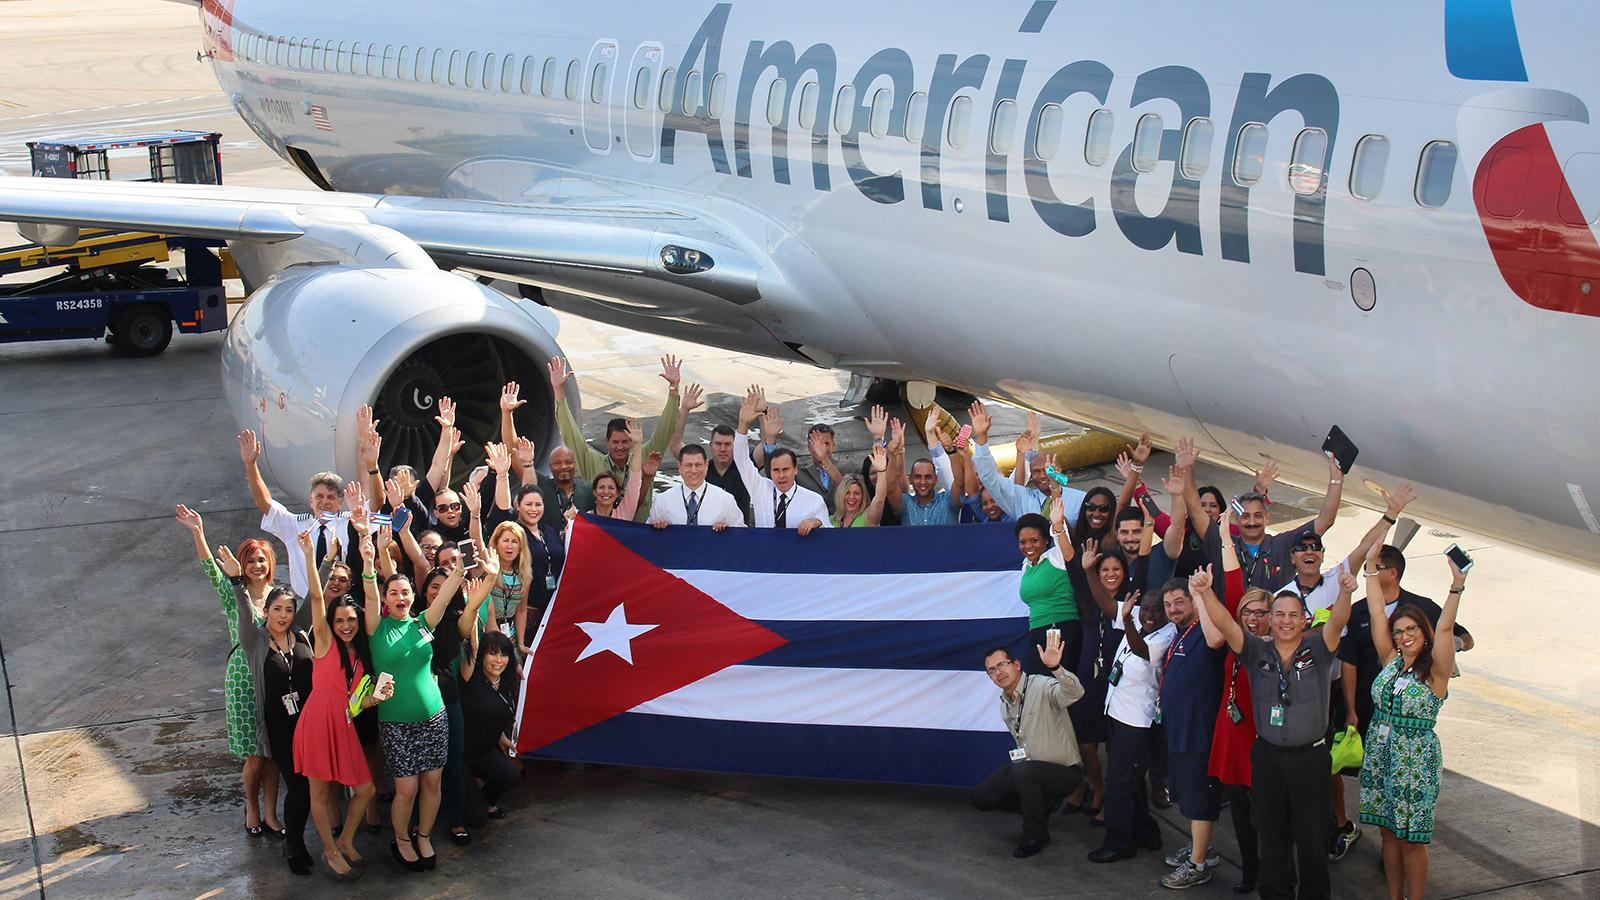 U.S. Airline Opens First Office In Havana